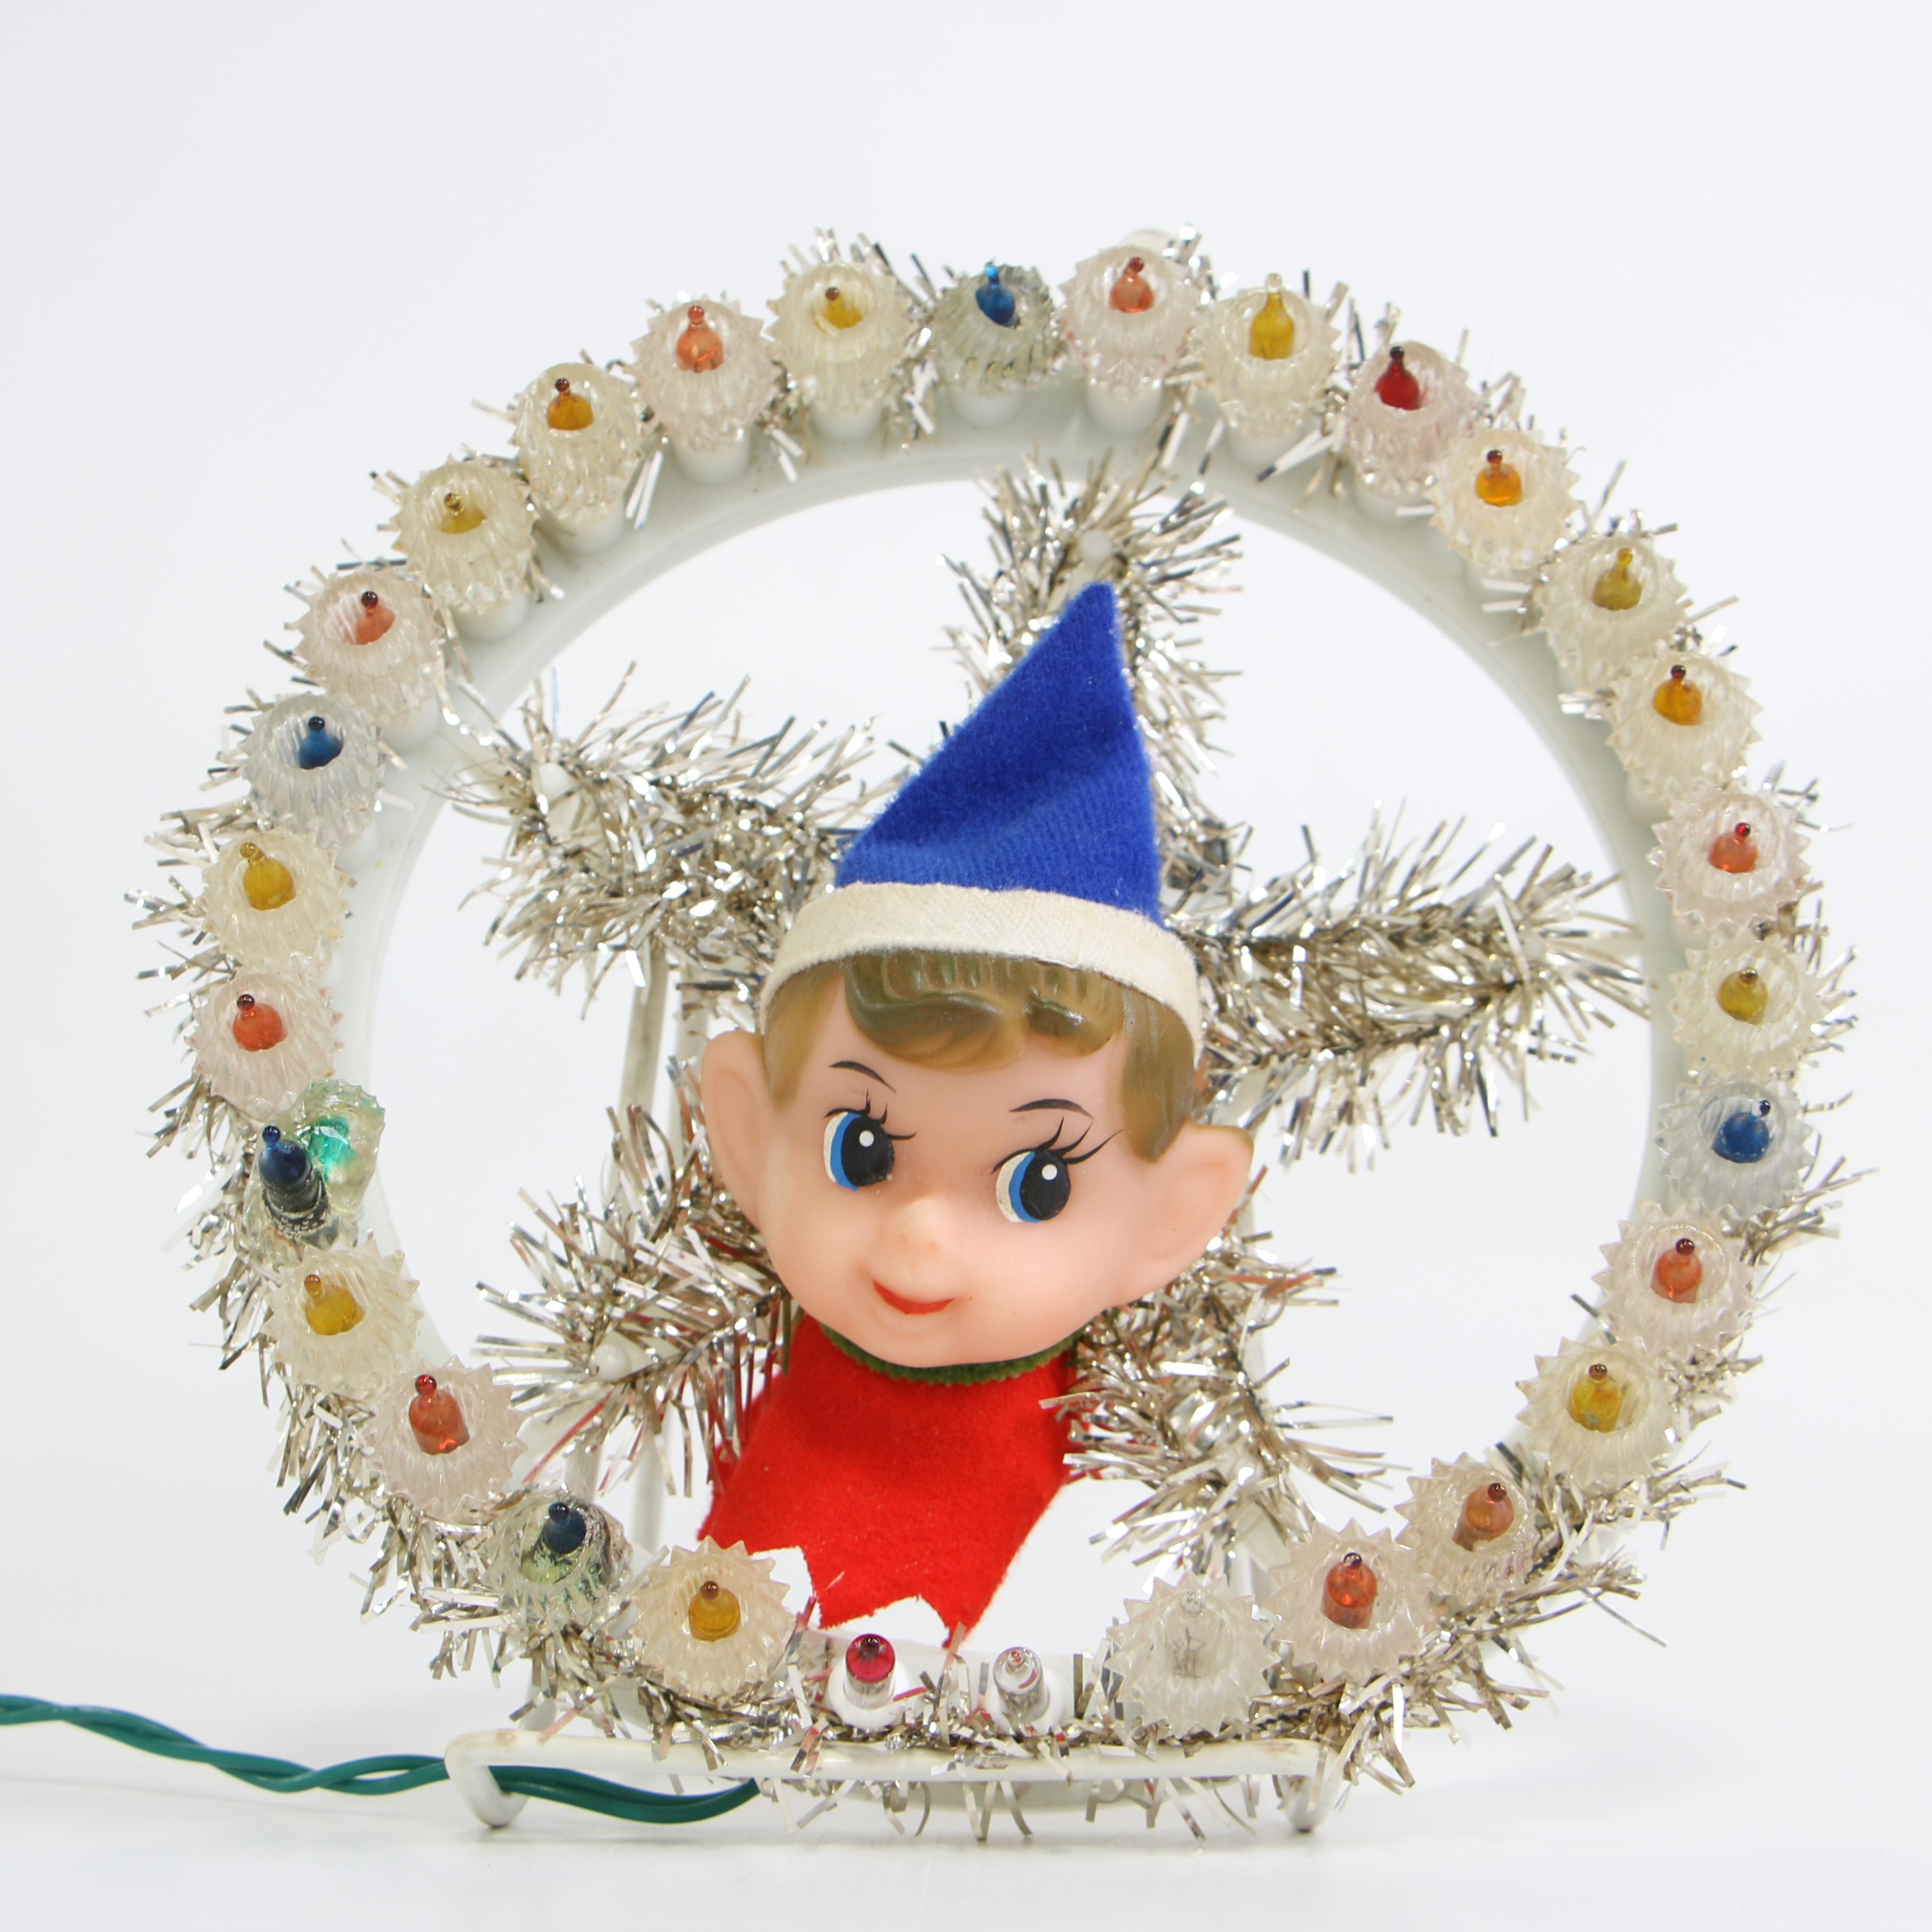 Lighted Christmas Decoration with Elf